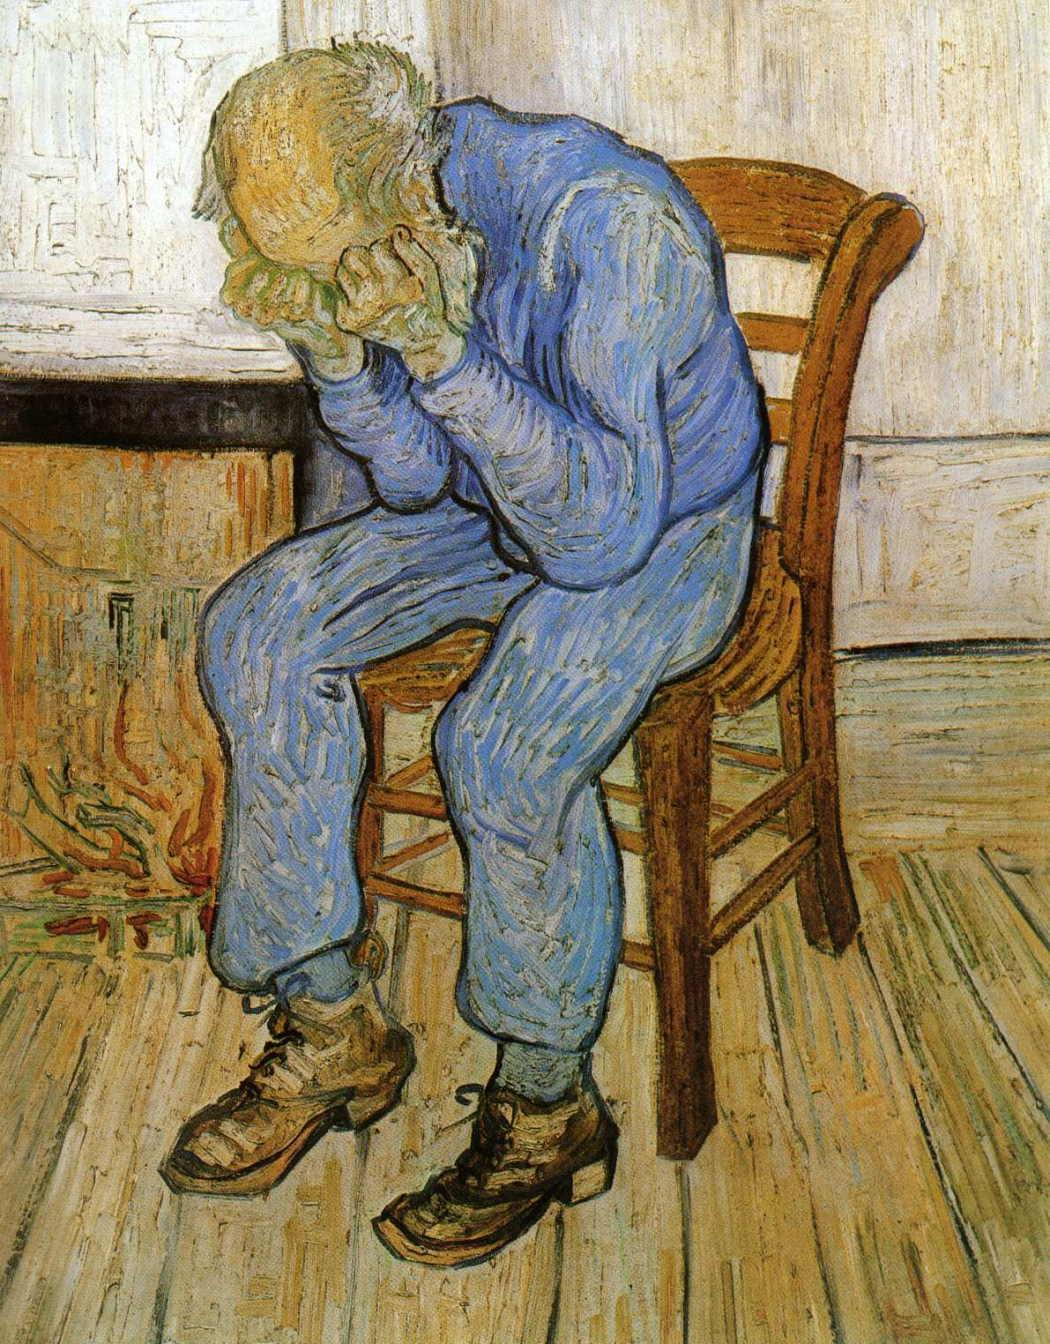 ryandonato:  Vincent van Gogh, Old Man in Sorrow